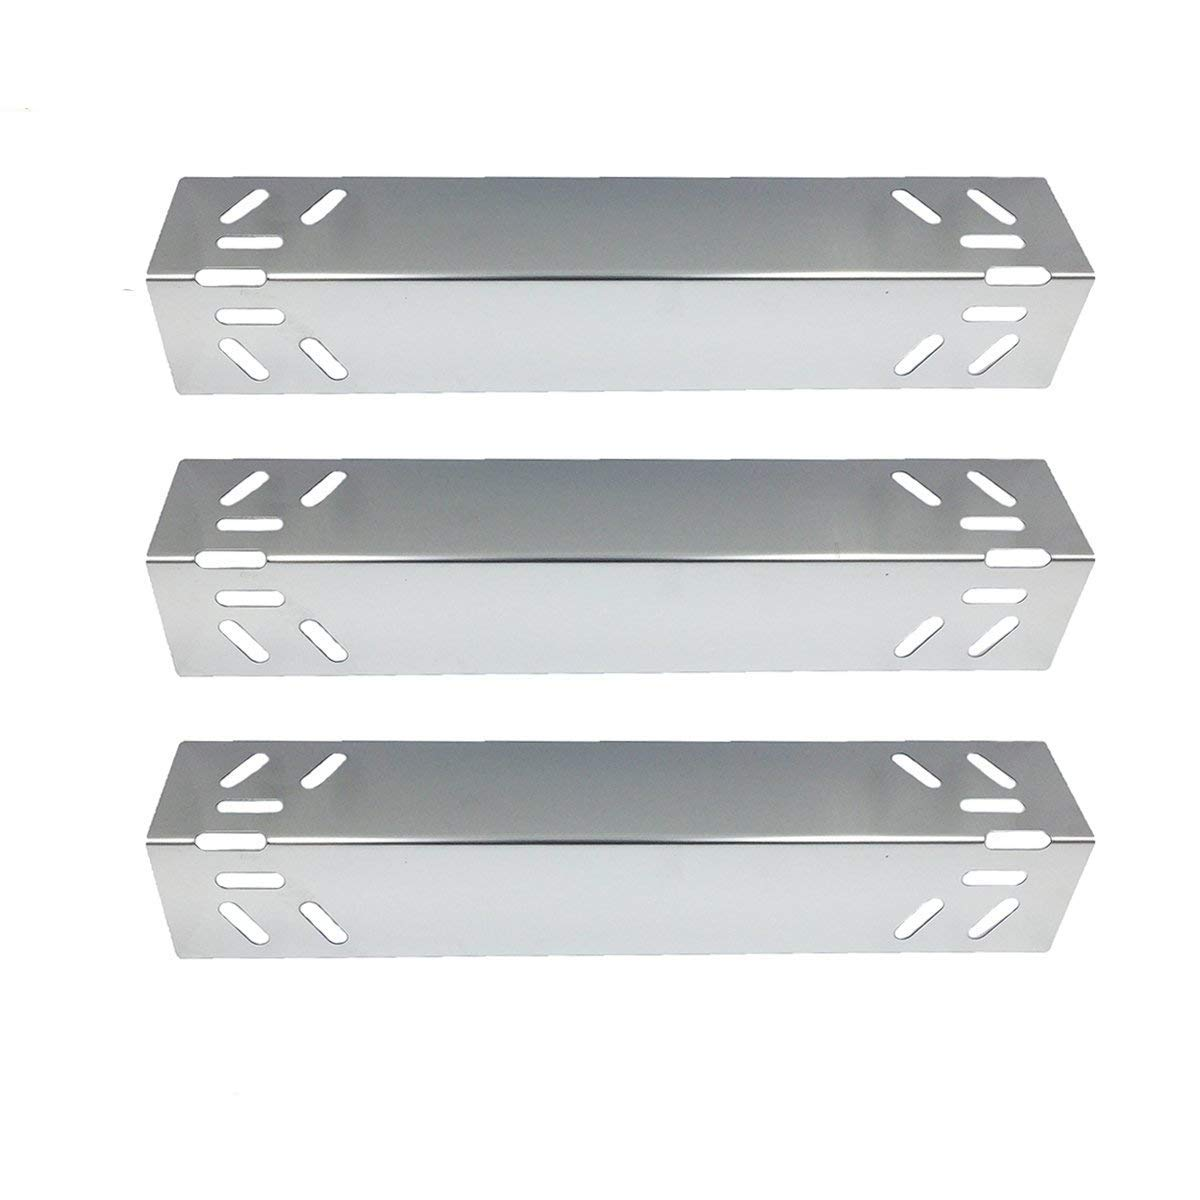 Stainless Steel Heat Plates Tent Burner Covers 8-Pack for Perfect Flame Barbecue